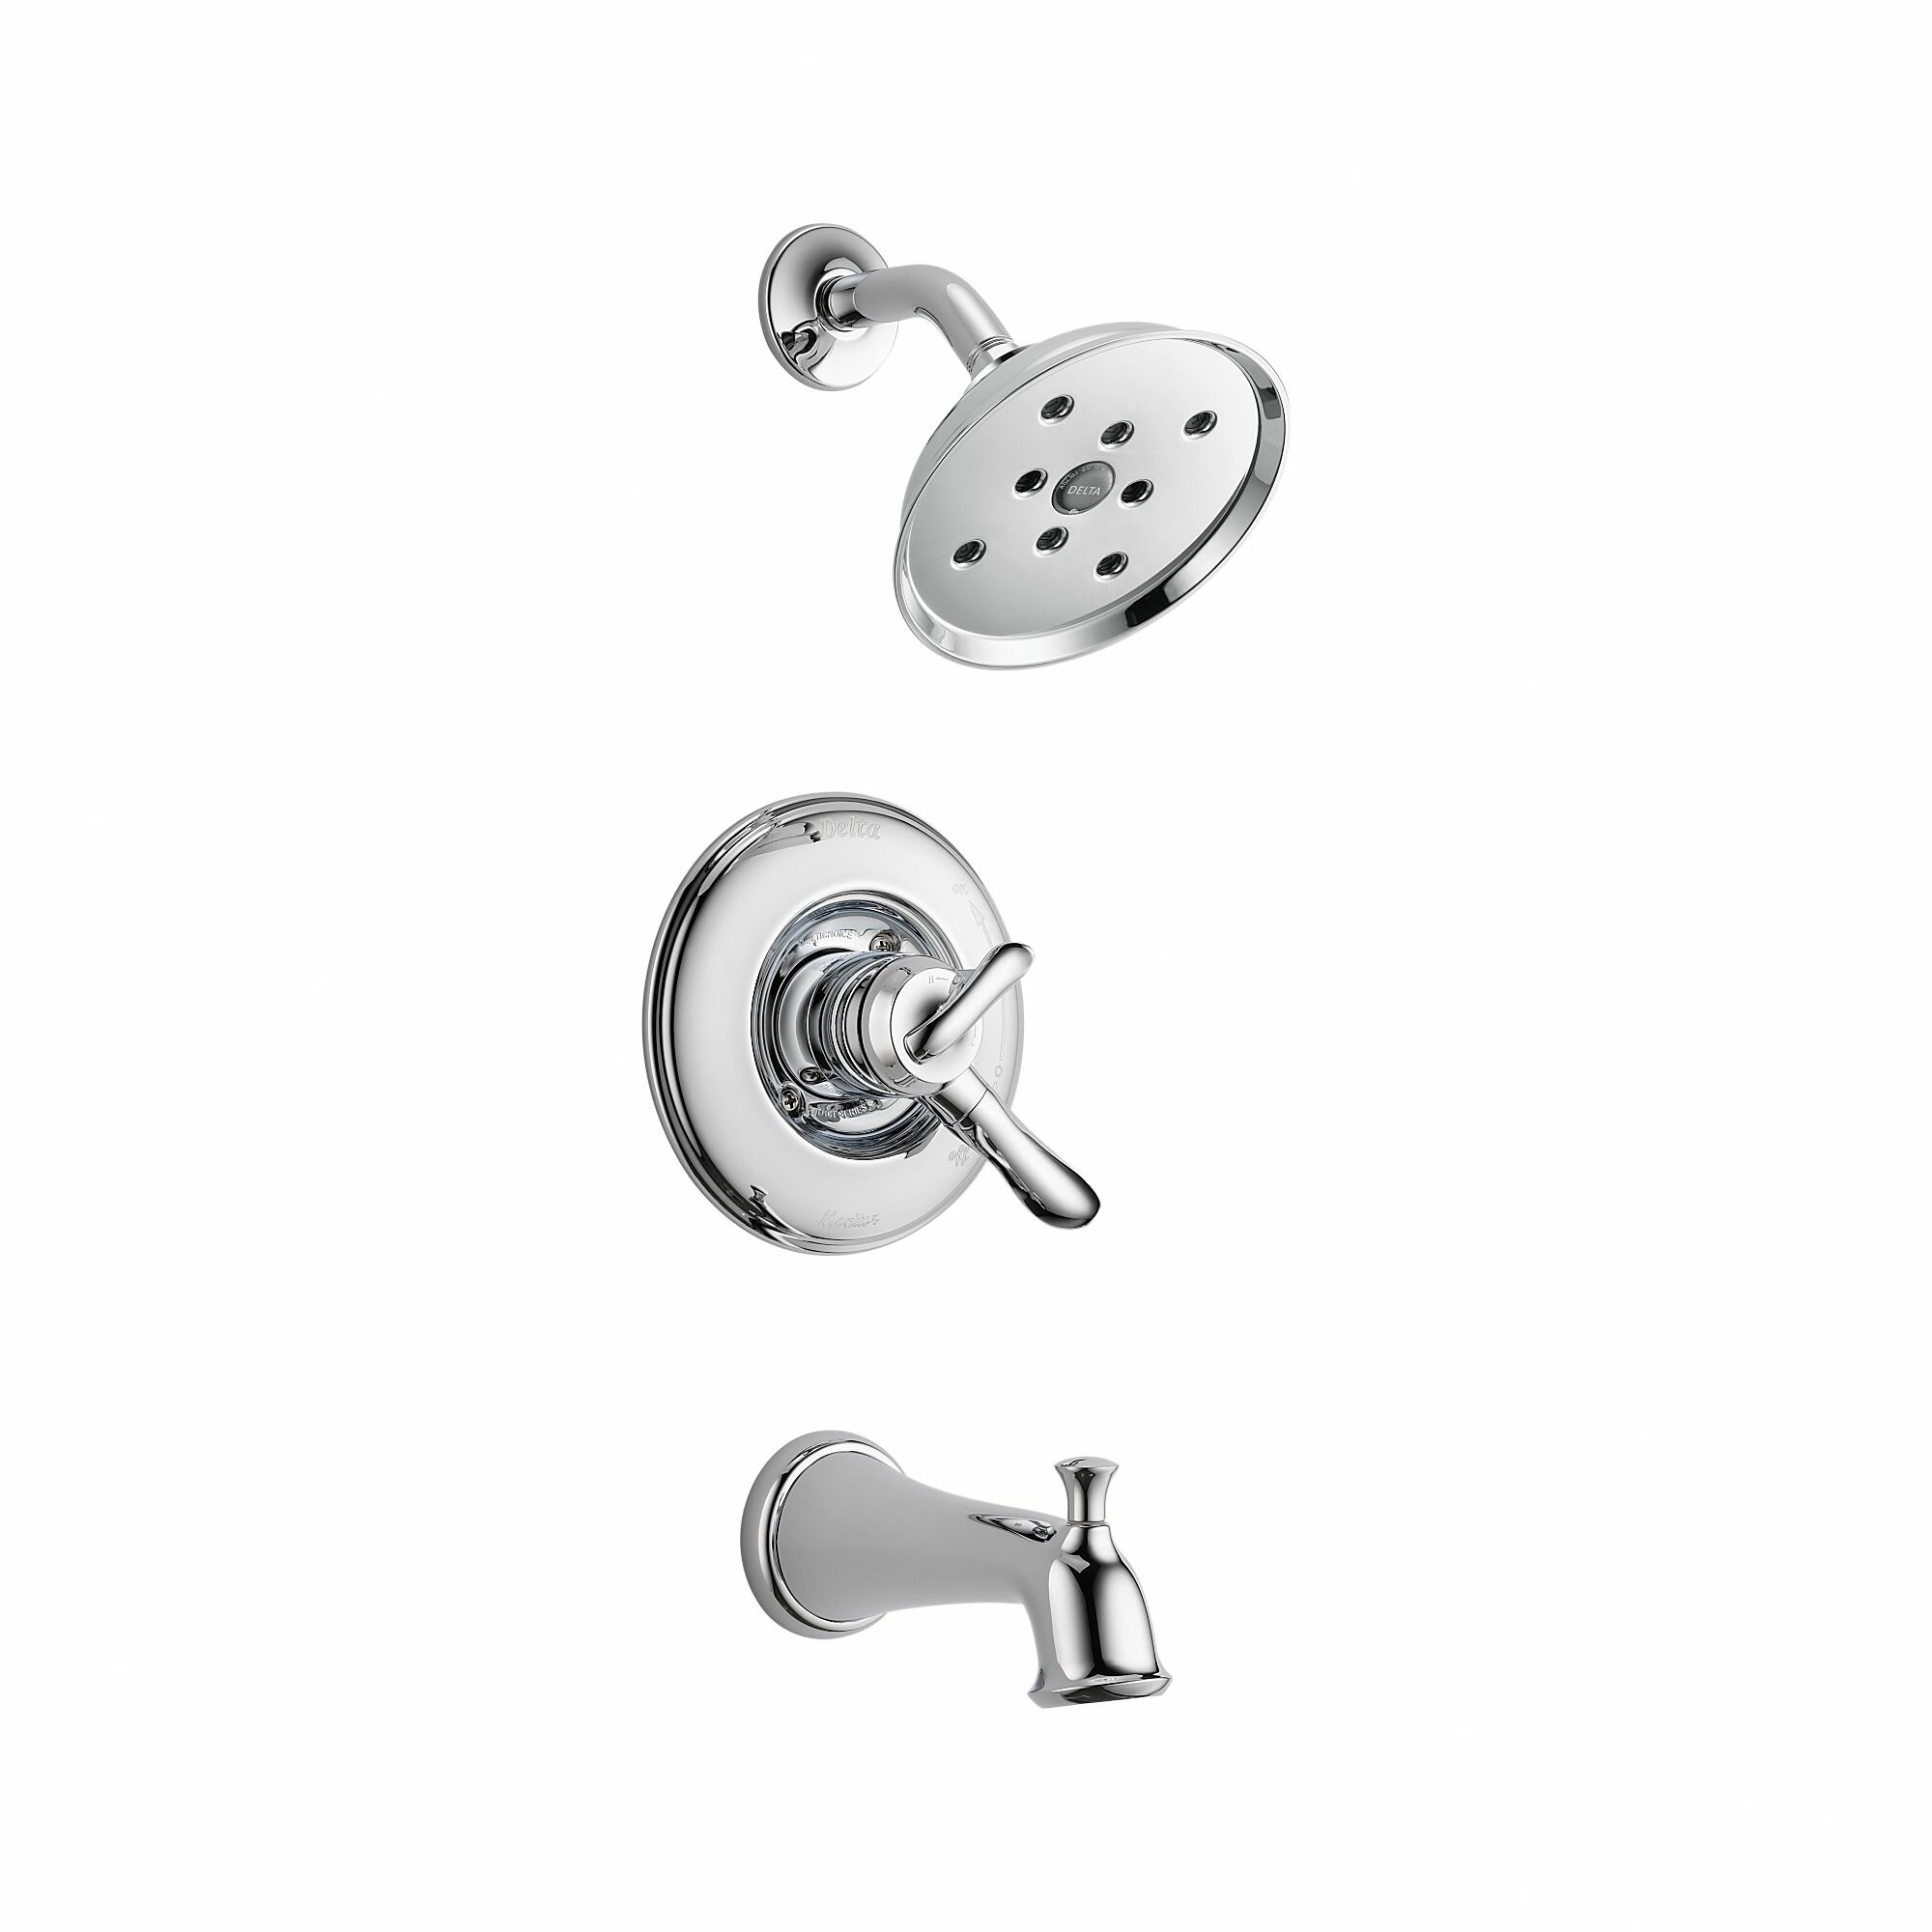 T17494 Ssrb Delta Linden Tub And Shower Faucet Trim With Lever Diagram 2 10 From 11 Votes Handles Monitor Reviews Wayfair